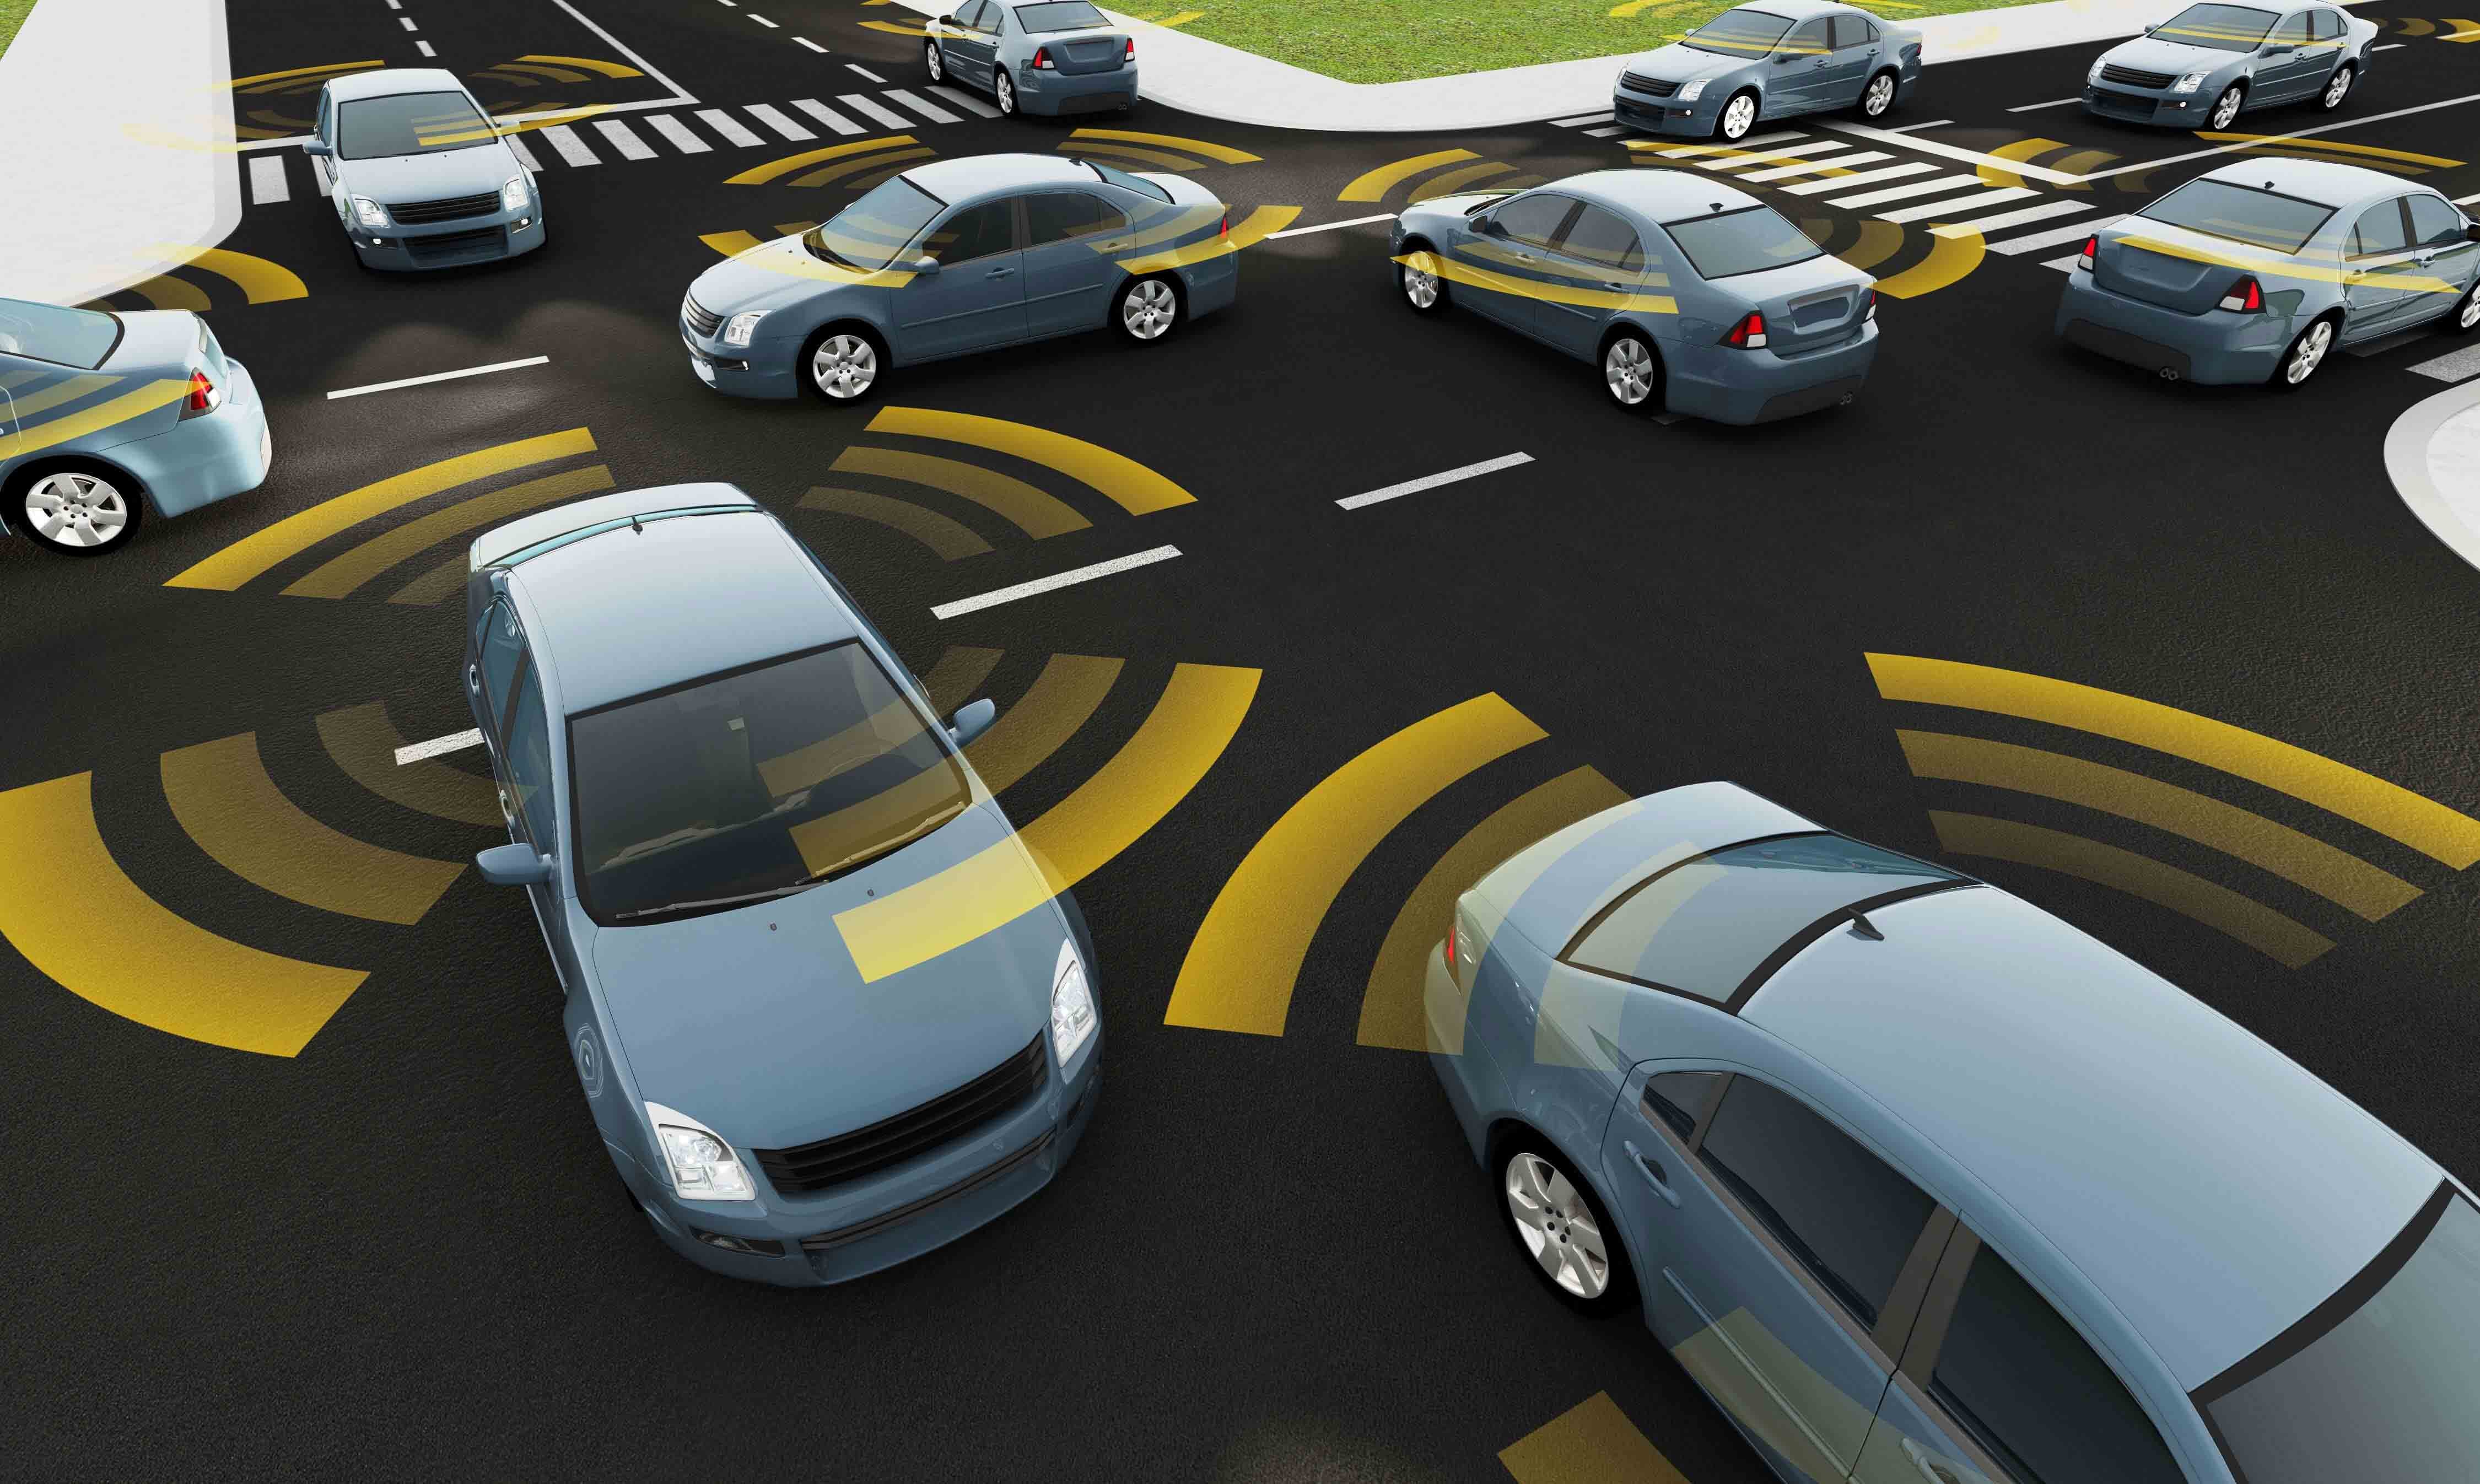 Danlaw to Host the USDOT Connected Vehicle PlugFest